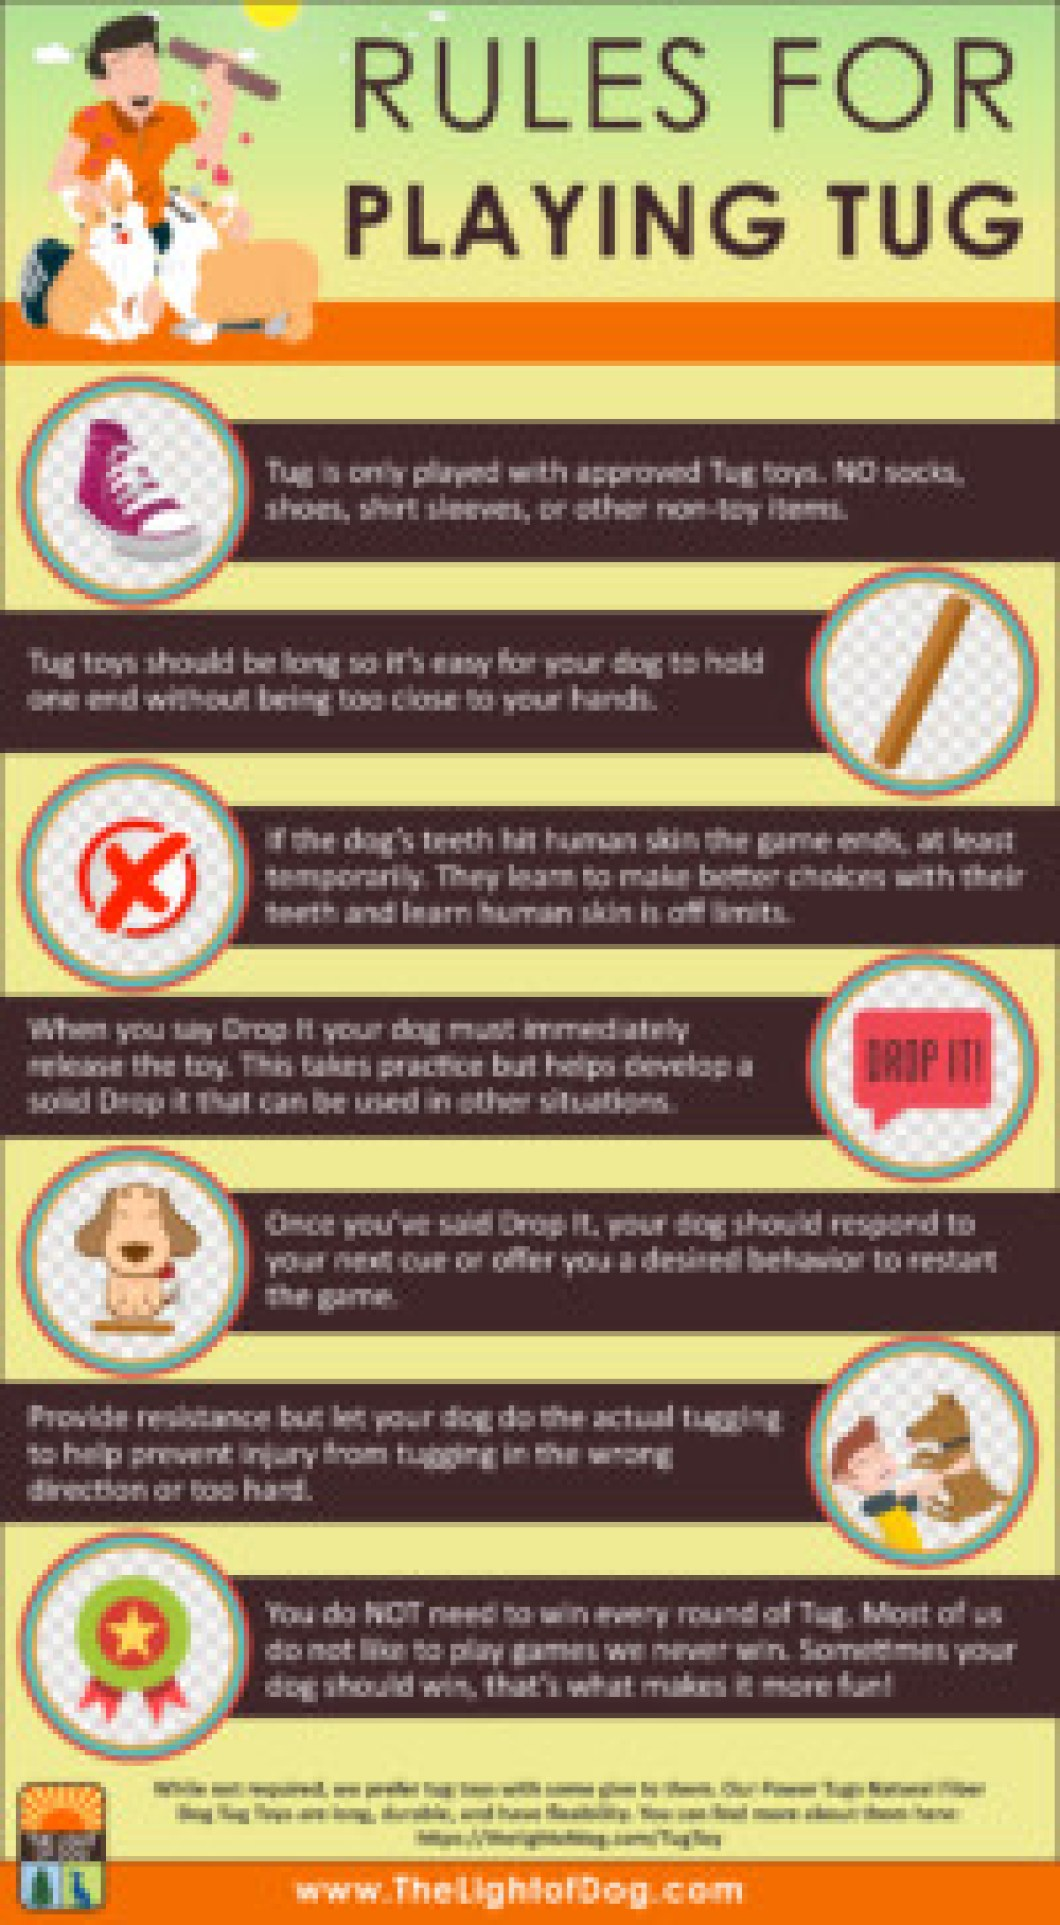 rules for playing tug with your dog